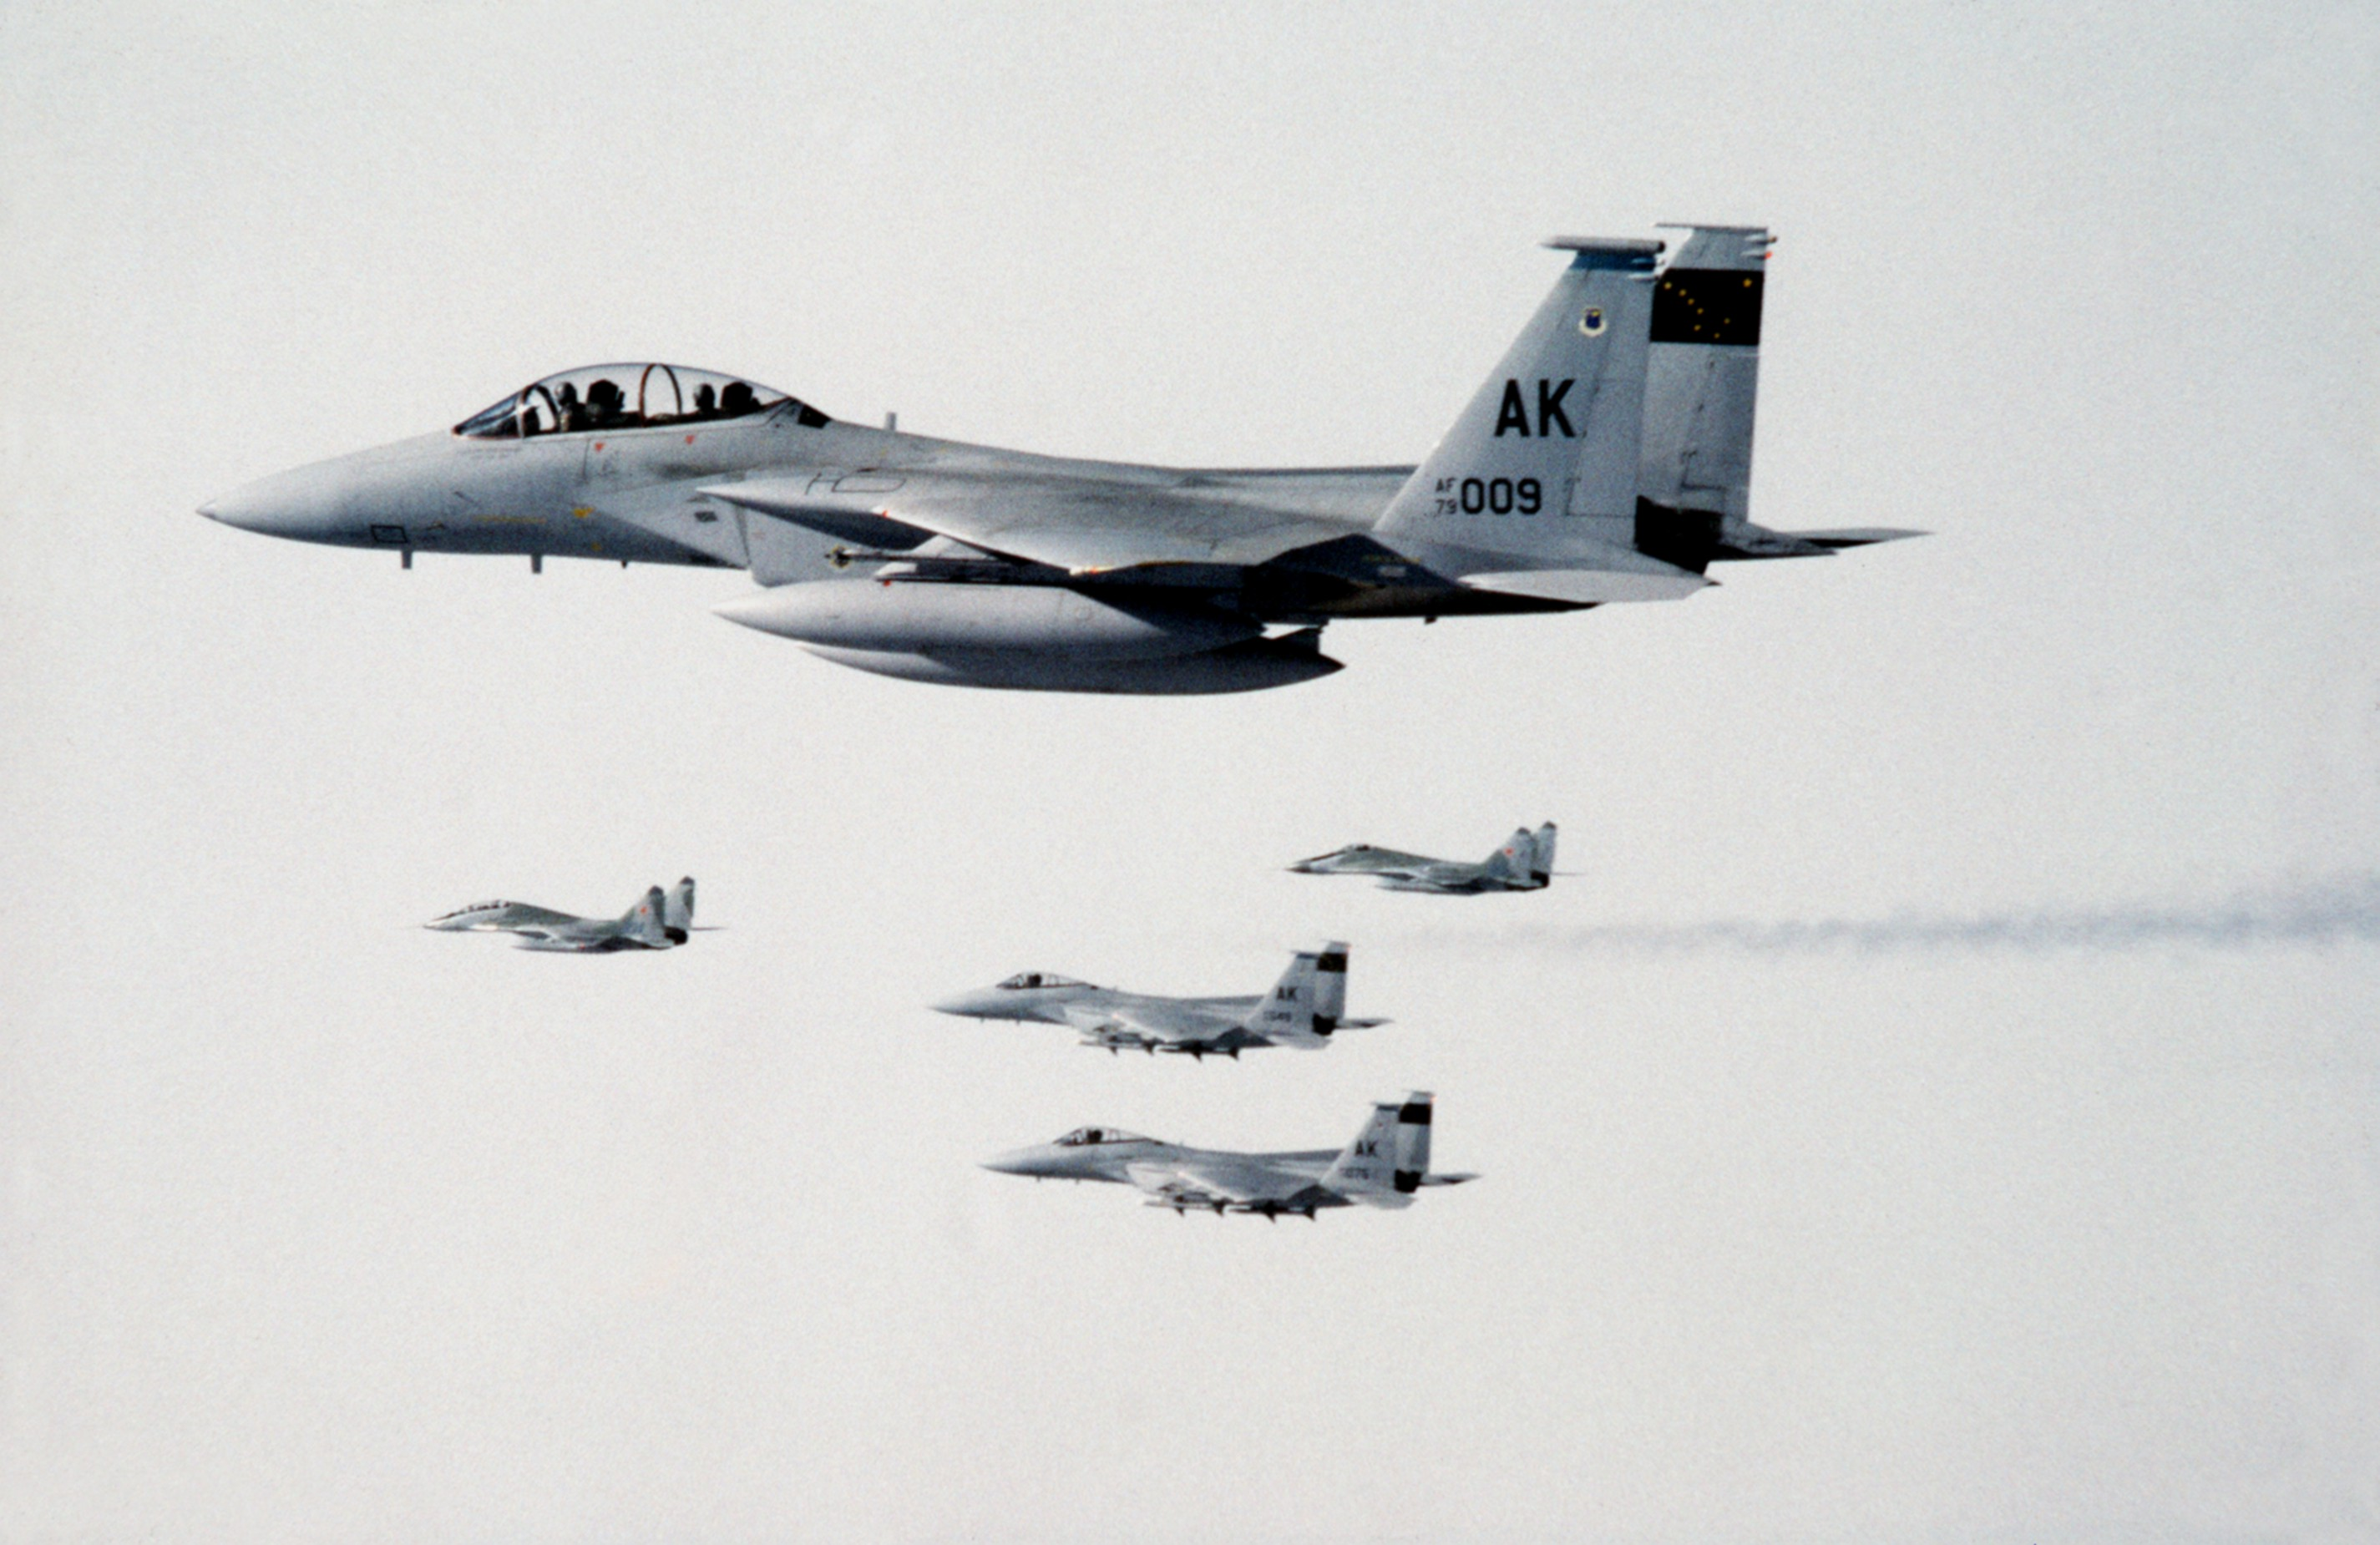 US_F-15s_and_Soviet_MiG-29s_over_Alaska_